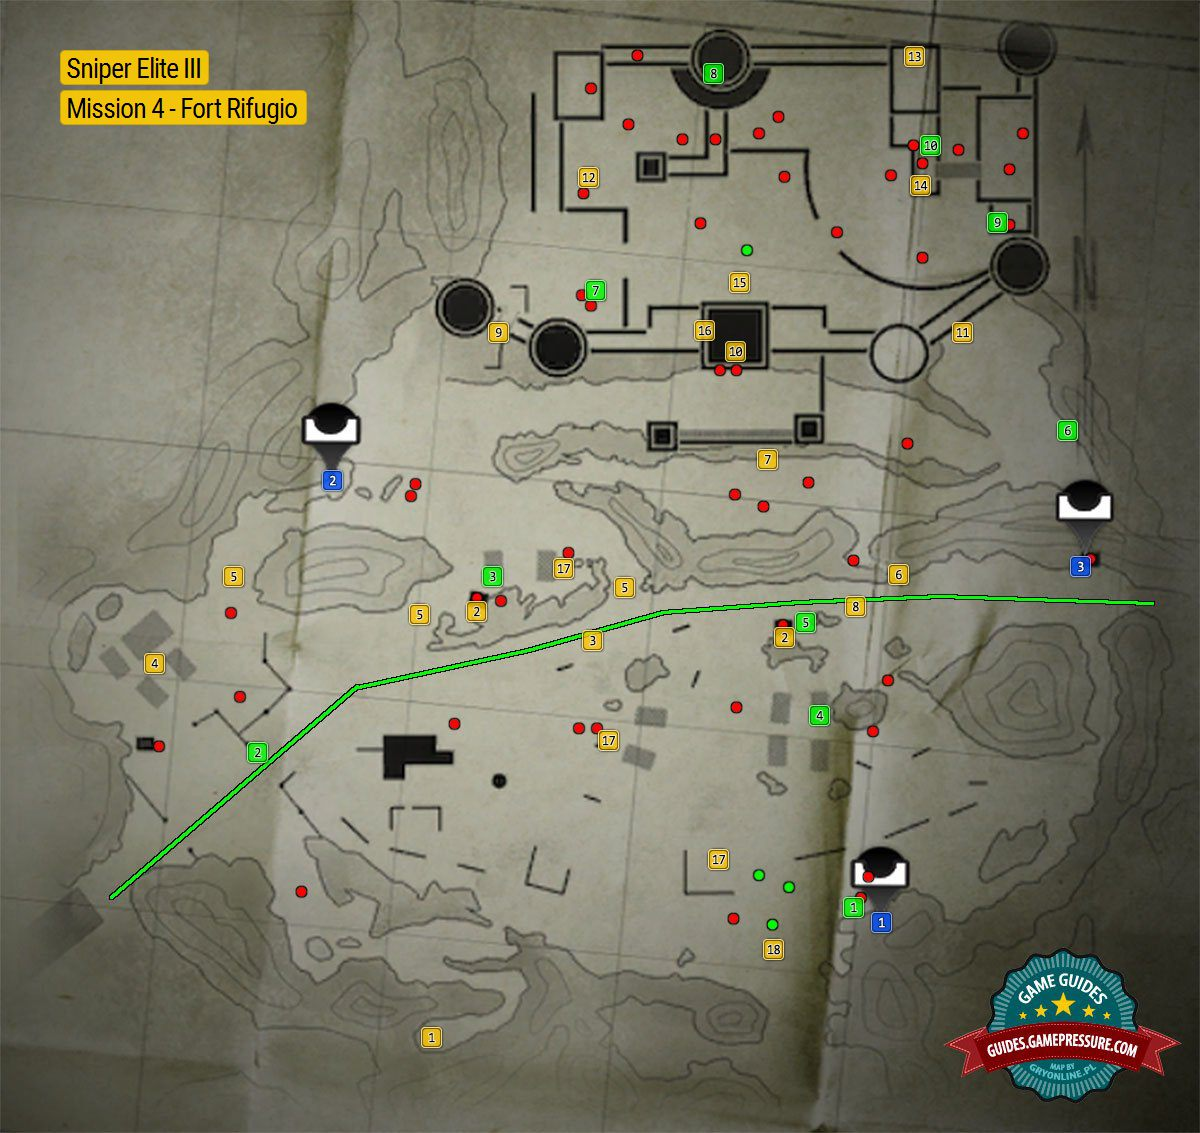 Sniper elite 3 all collectibles map guide